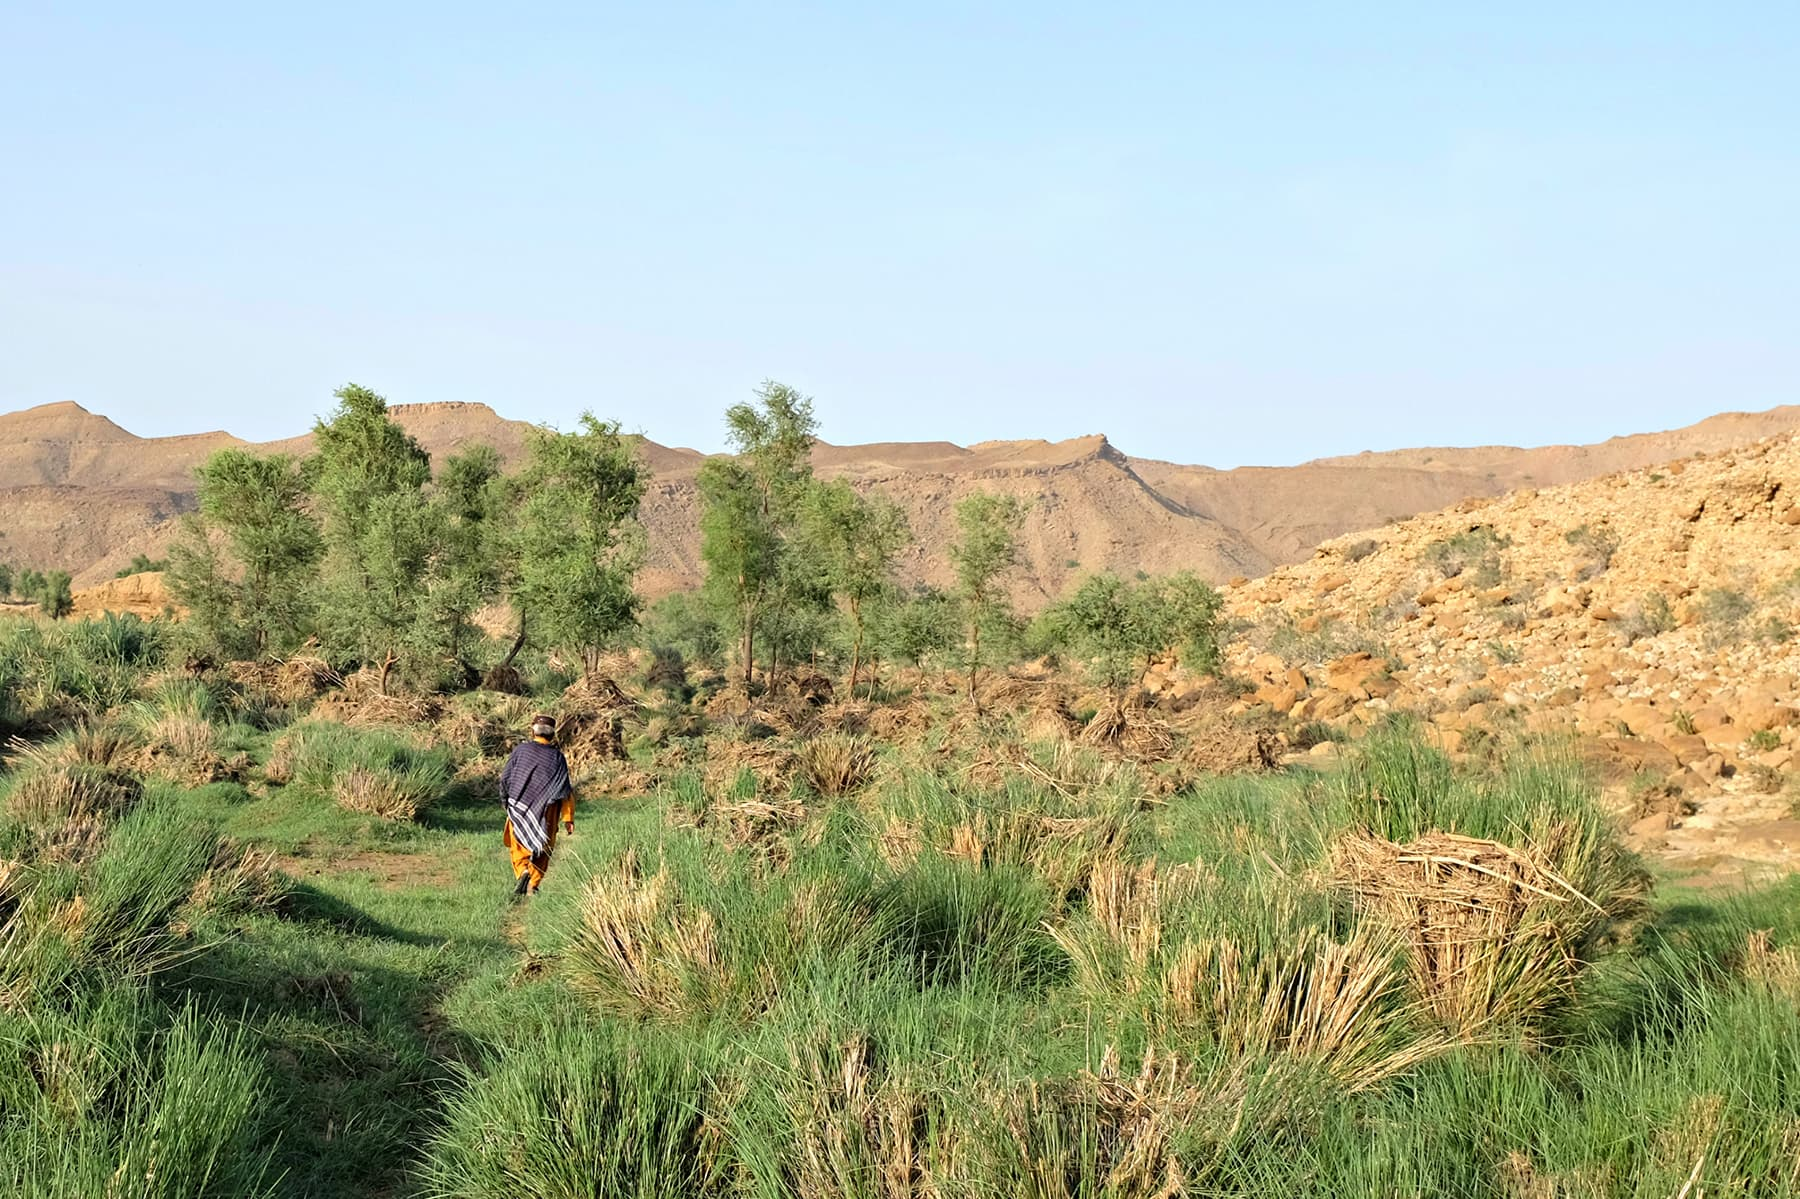 The greenery in the area is proof of the wonders that a stream of water could do to an arid zone.